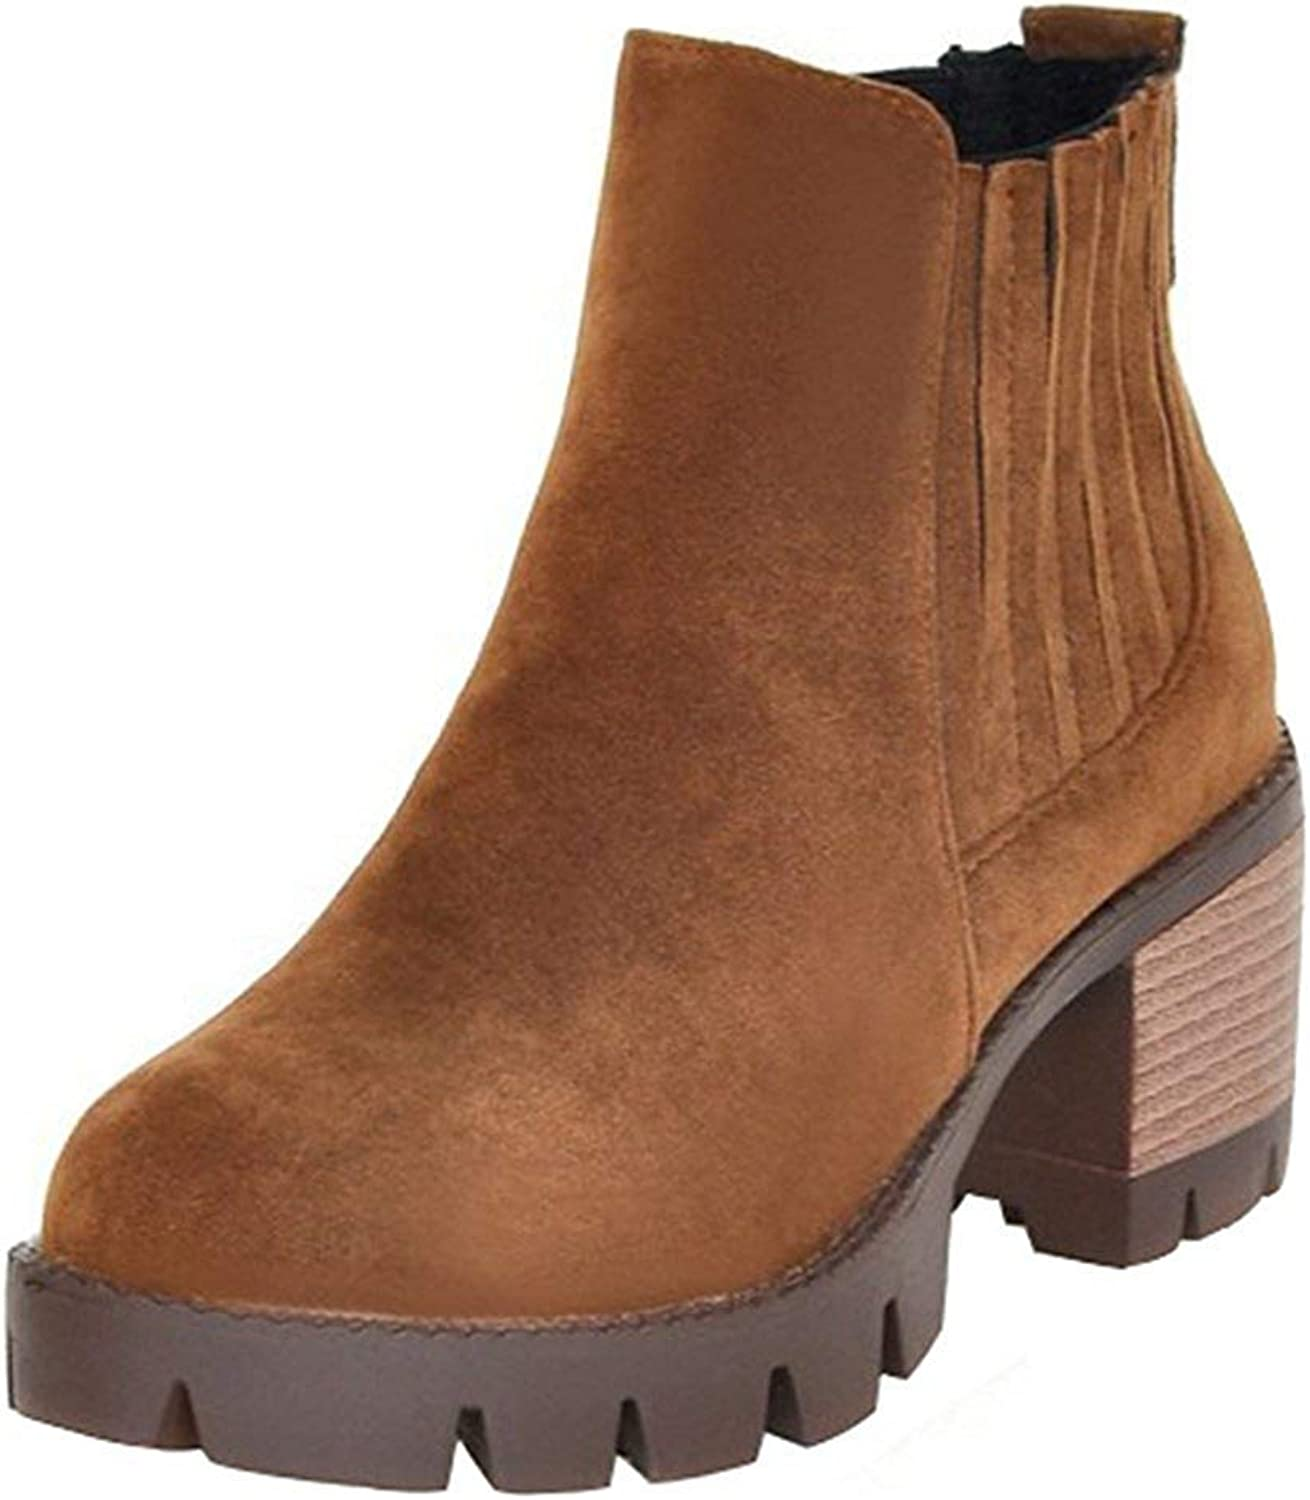 Gedigits Women's Fashion Faux Suede Round Toe Stacked Block Medium Heel Platform Slip-on Ankle Booties Coffee 6 M US